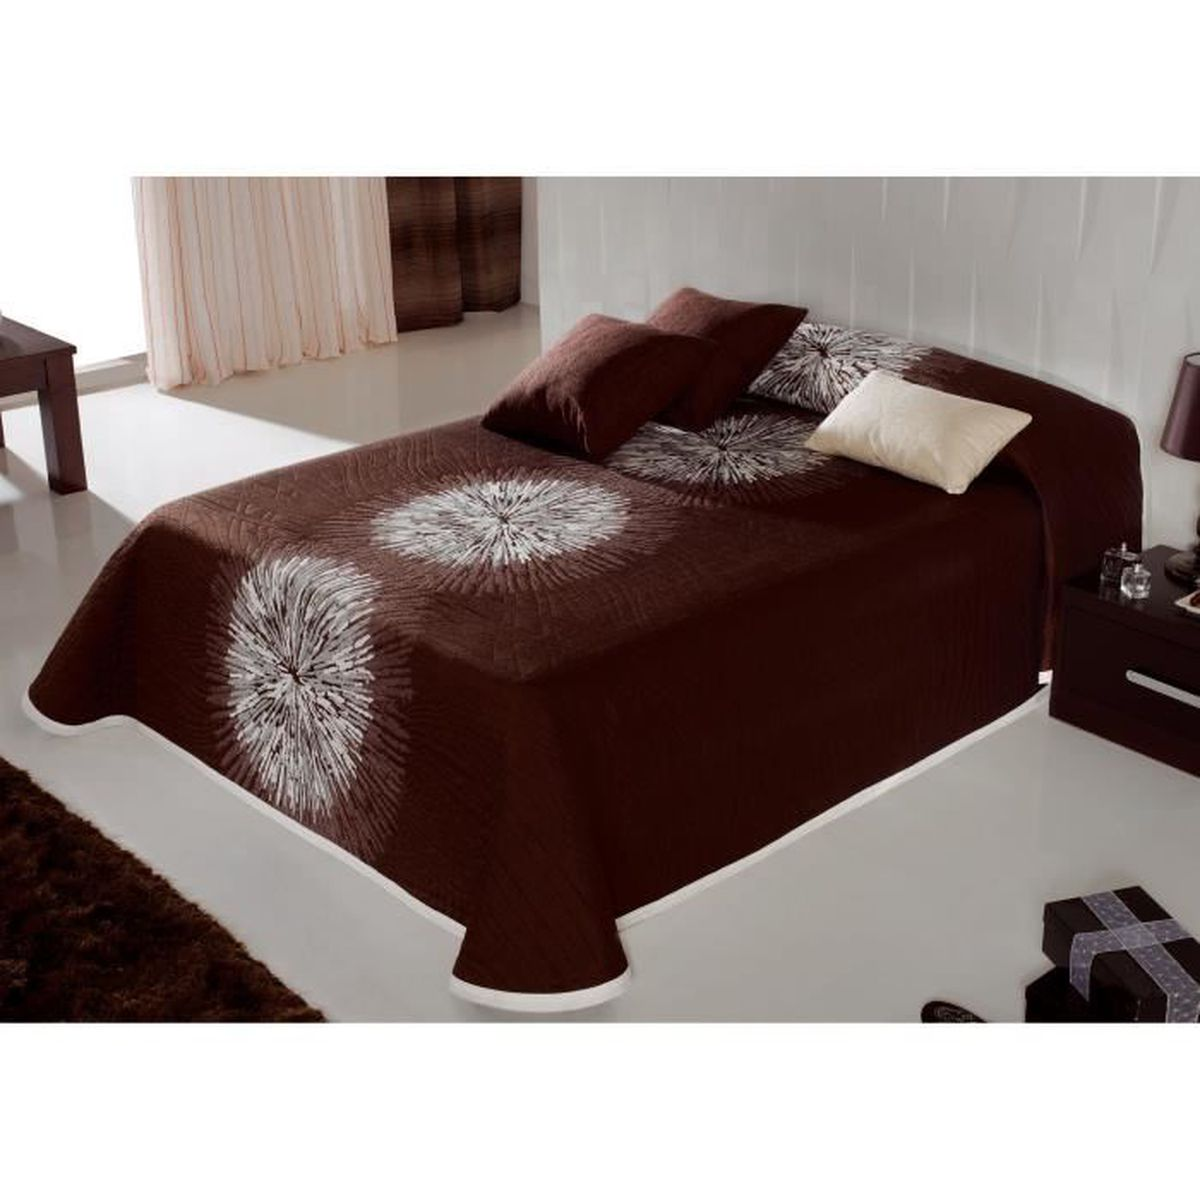 couvre lit 250x270 cm tiss jacquard agnes marron pour lit. Black Bedroom Furniture Sets. Home Design Ideas